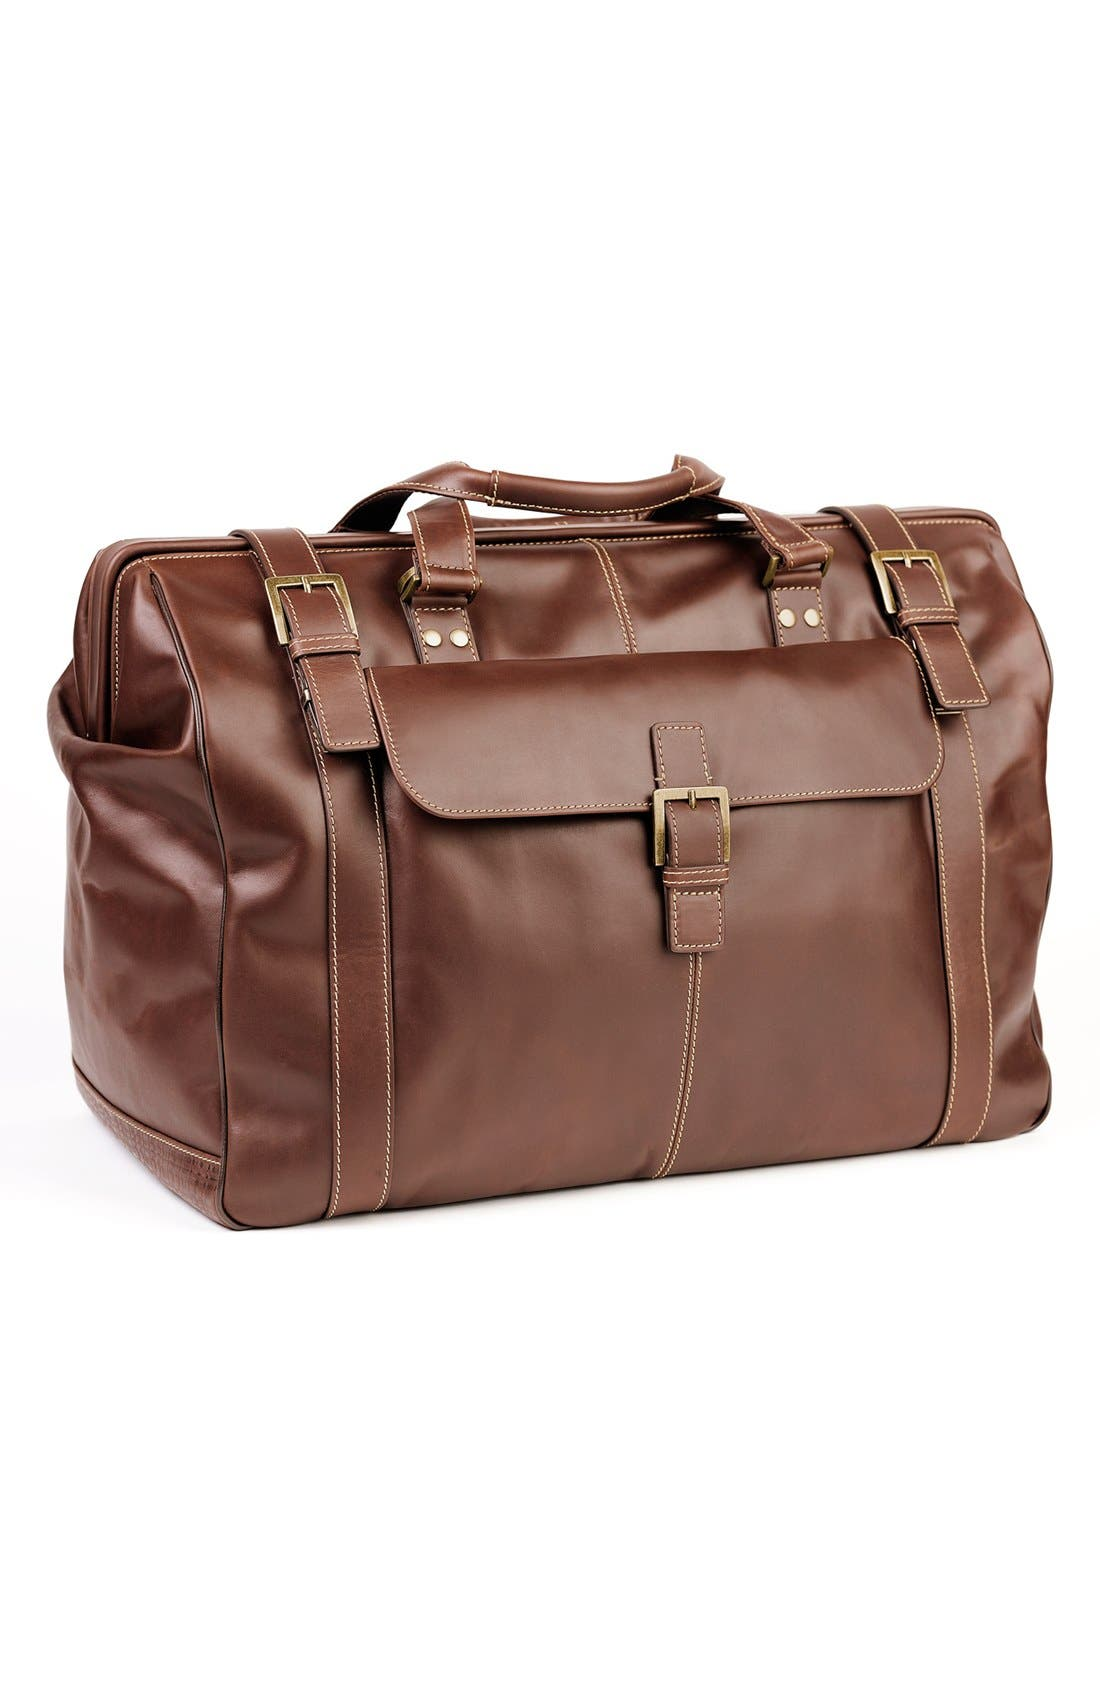 'Bryant' Duffel Bag,                         Main,                         color, Antique Mahogany